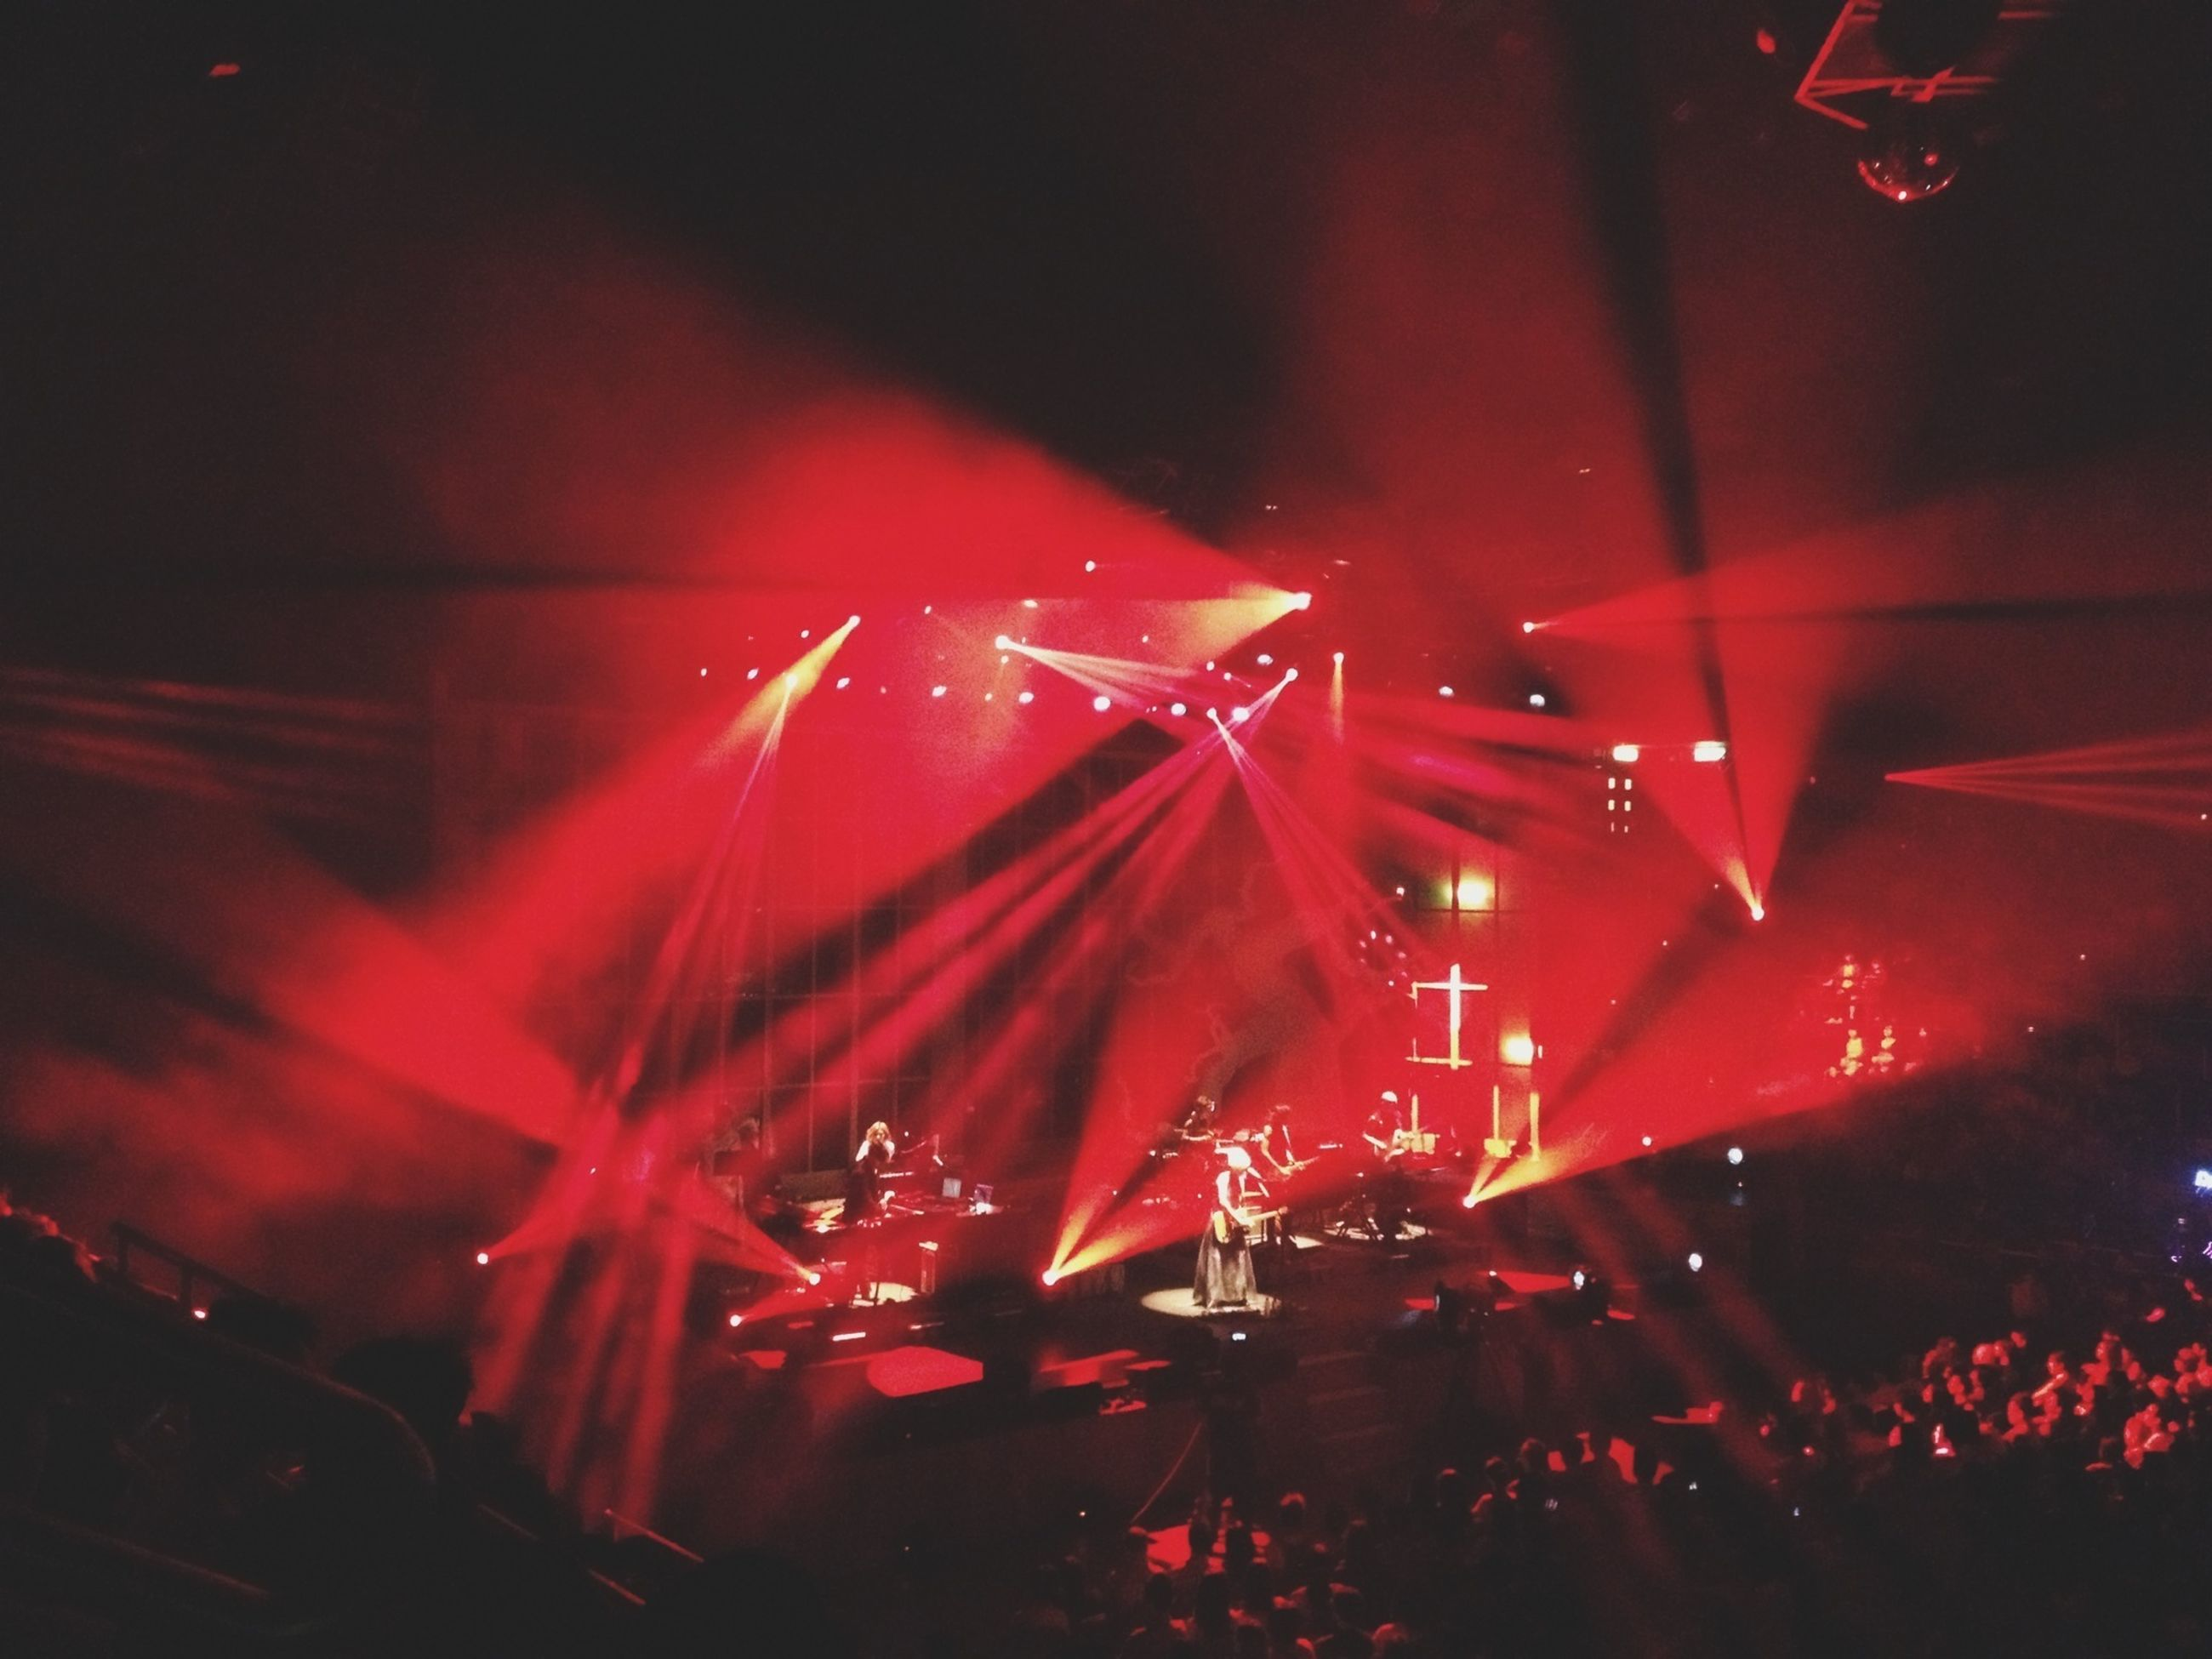 illuminated, night, indoors, nightlife, men, large group of people, arts culture and entertainment, lighting equipment, lifestyles, light - natural phenomenon, leisure activity, performance, music, stage - performance space, crowd, person, nightclub, event